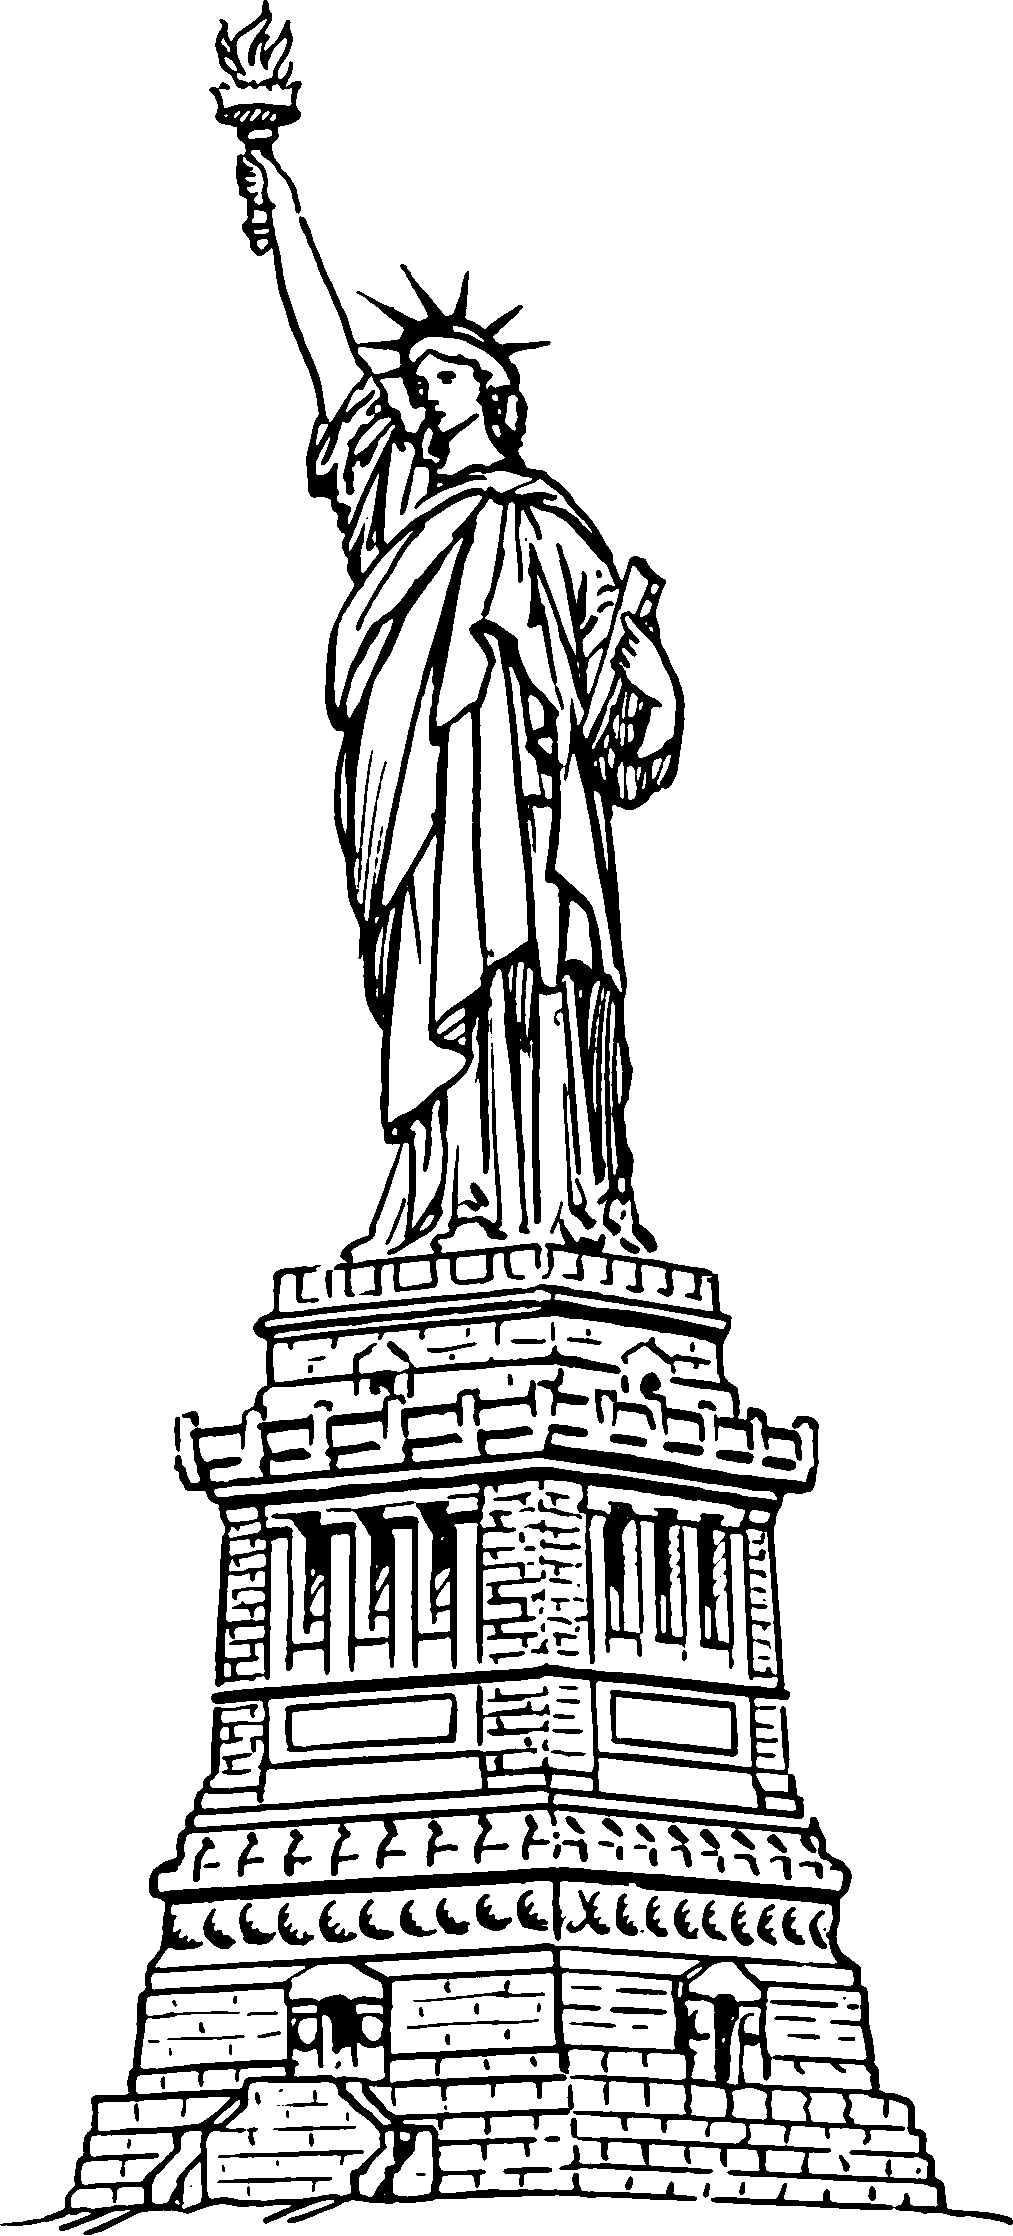 statue of liberty coloring page free printable statue of liberty coloring pages for kids of page statue coloring liberty